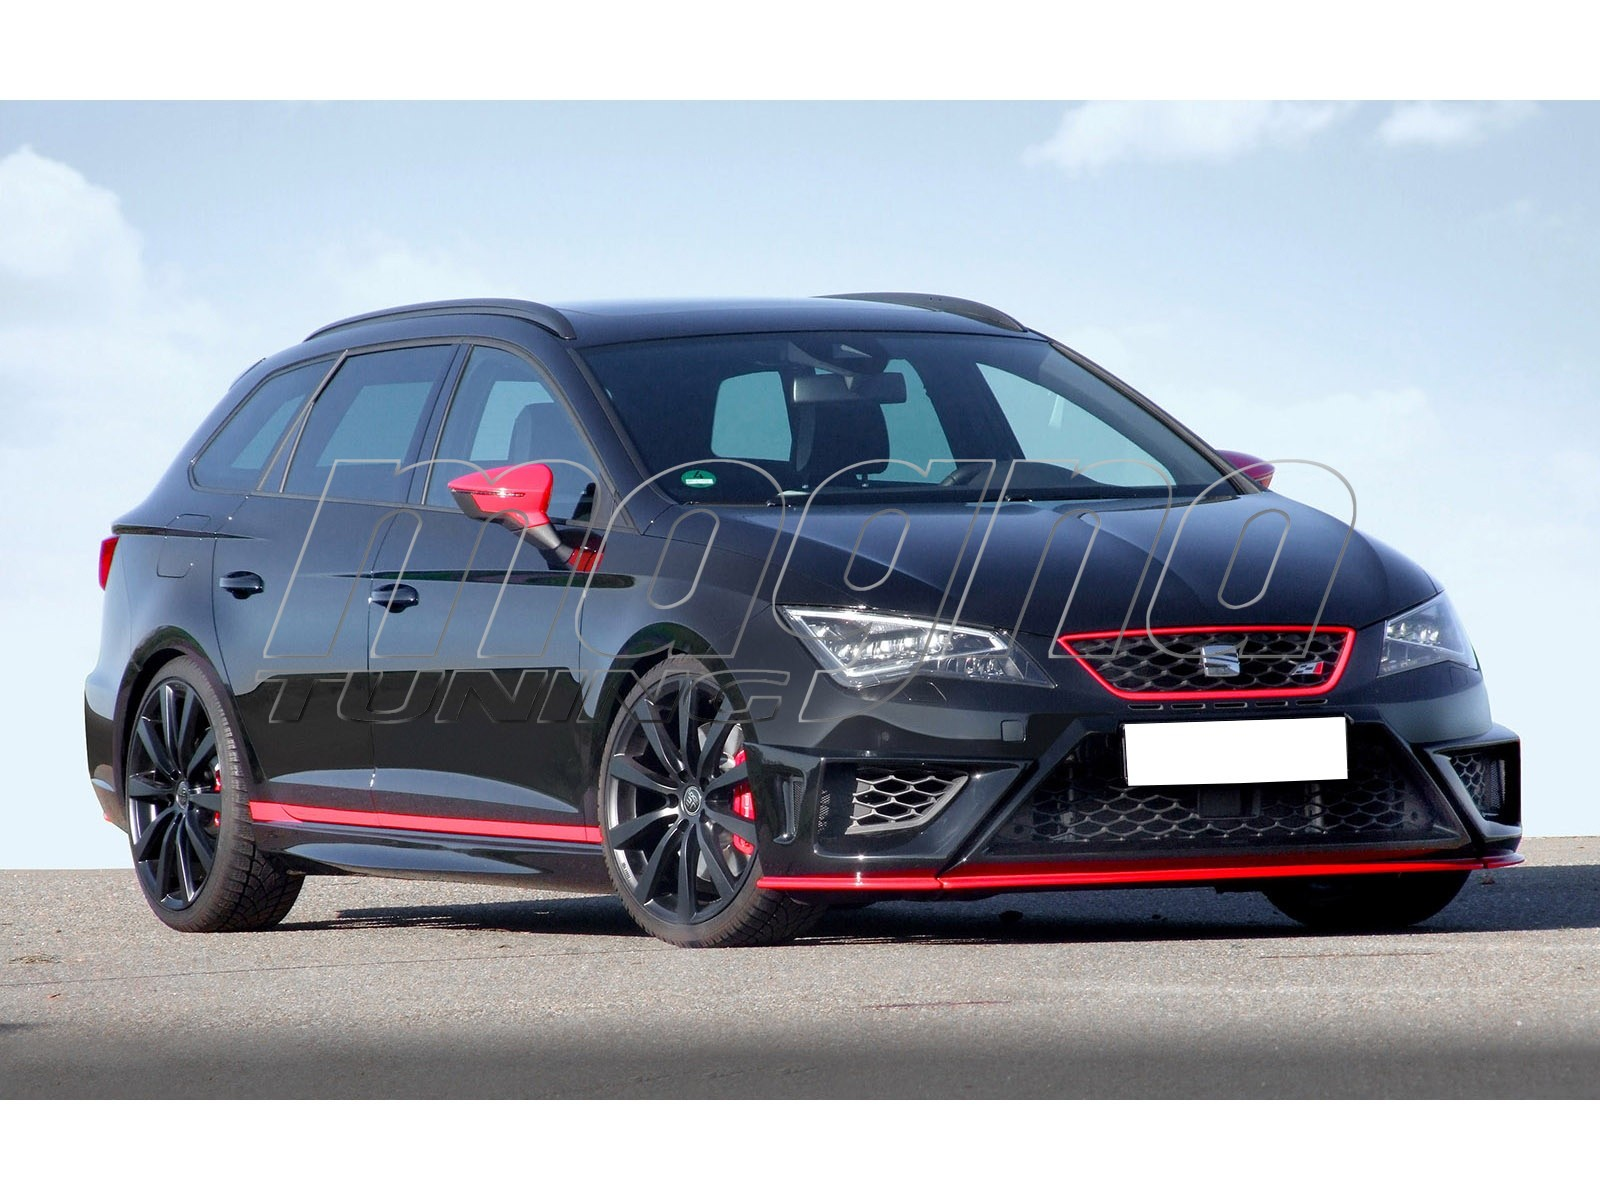 seat leon 5f fr cupra e2 front bumper extension. Black Bedroom Furniture Sets. Home Design Ideas